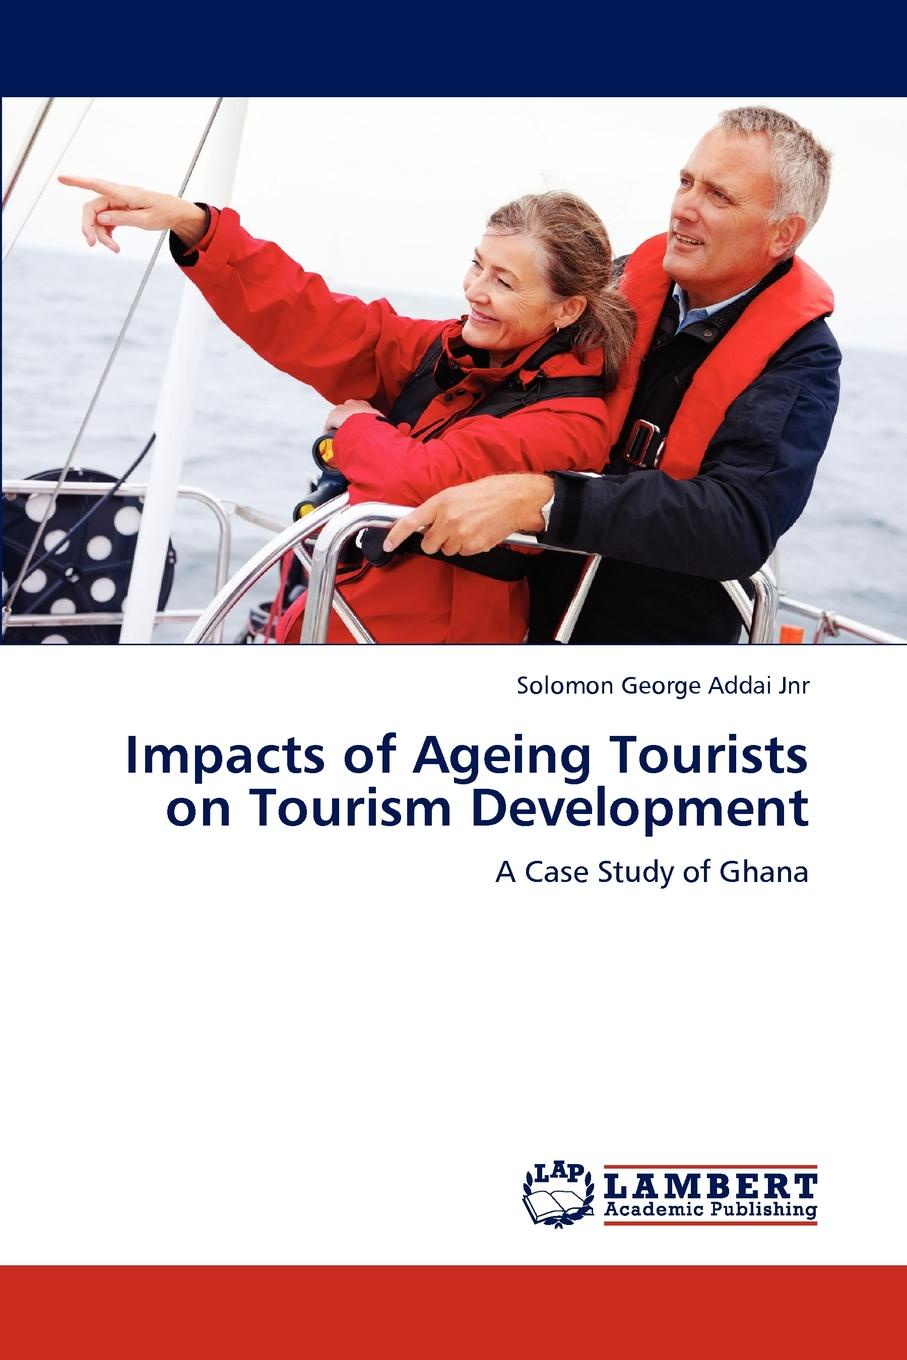 Solomon George Addai Jnr Impacts of Ageing Tourists on Tourism Development kofan lee impacts of family styles and adventure program on intrinsic motivation